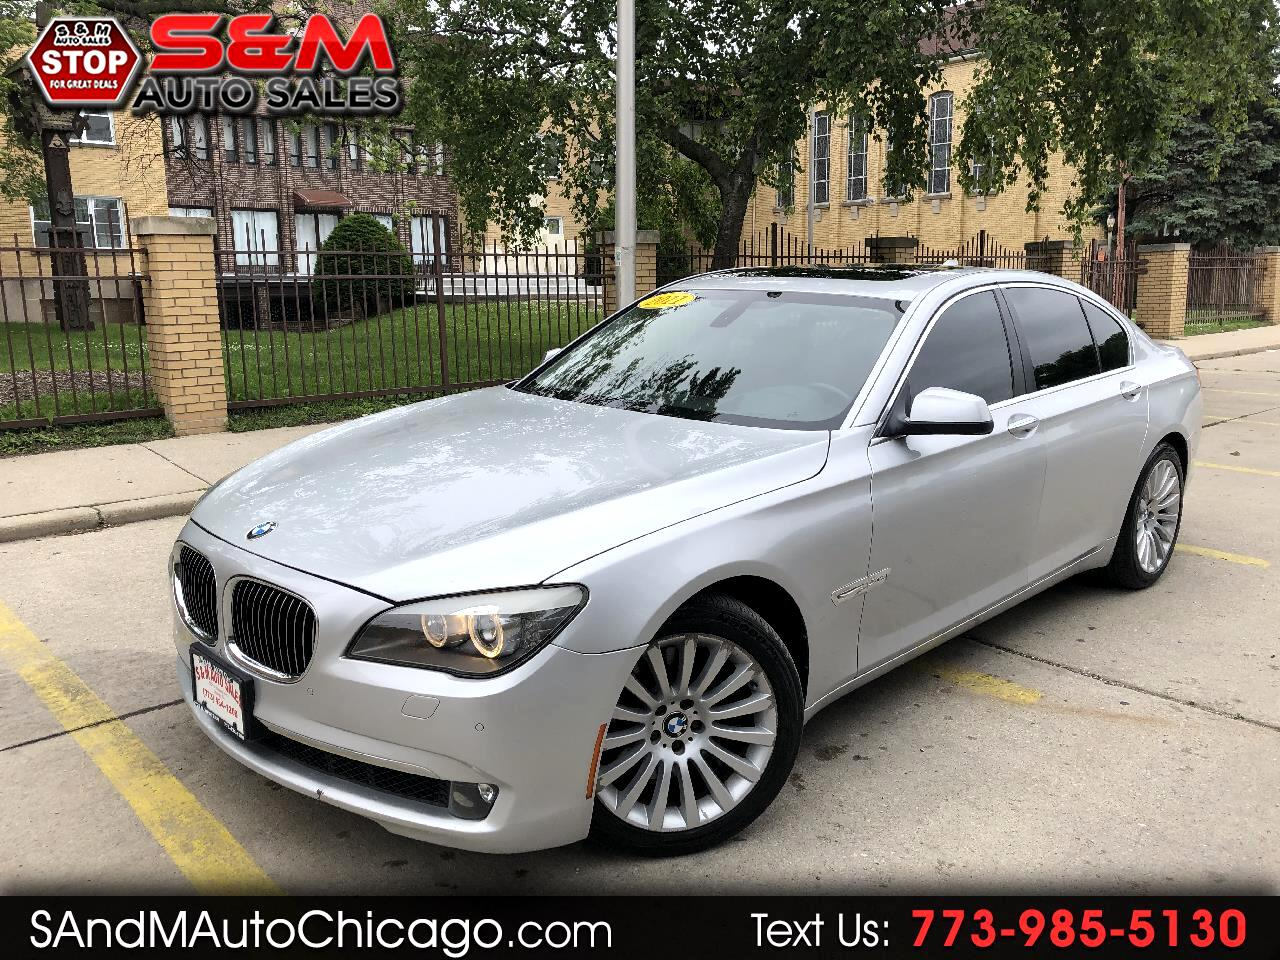 2011 BMW 7 Series 4dr Sdn ALPINA B7 SWB xDrive AWD